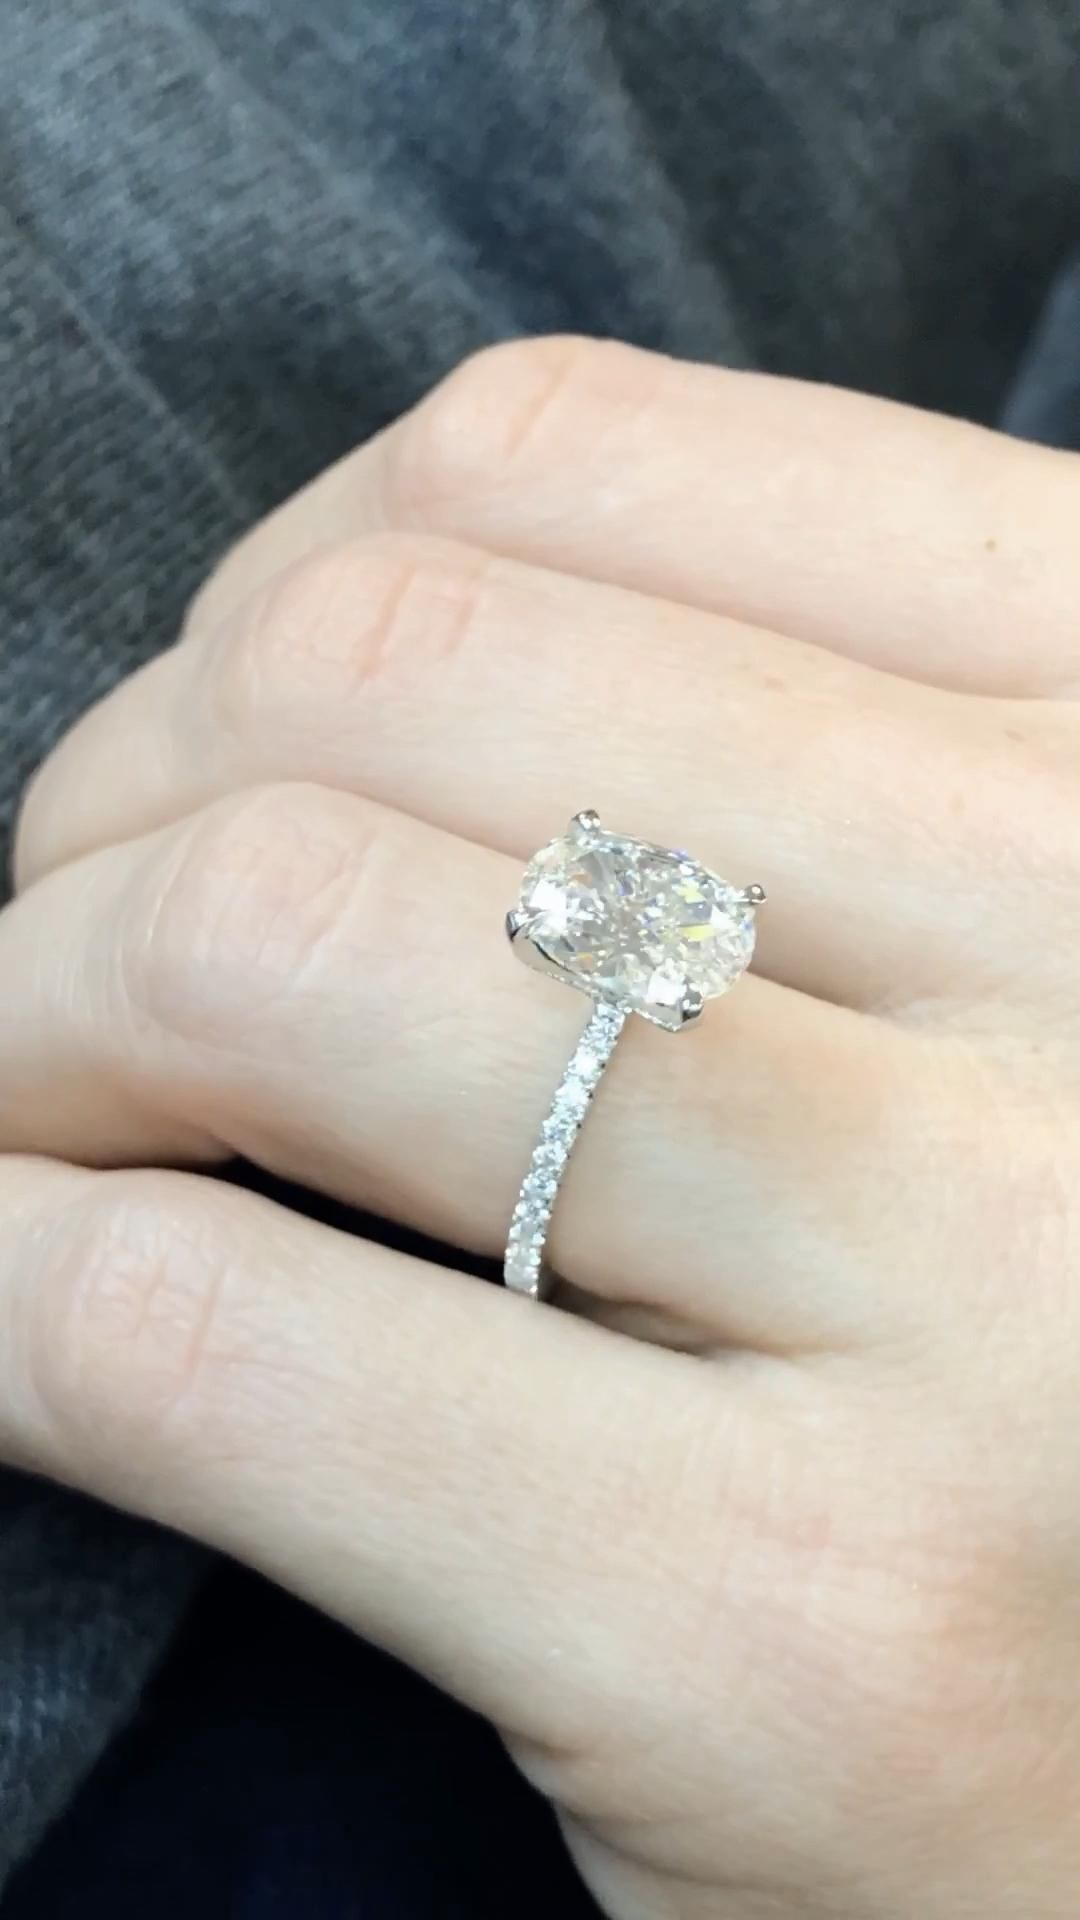 This oval engagement ring combines timeless beauty with modern design. Featuring a magnificent oval cut diamond center, set on a classic solitaire style ring to be enjoyed for generations.   Contact Ascot Diamonds Atlanta to design your own diamond ring. ✨✨  #ascotdiamonds #ovalengagementrings